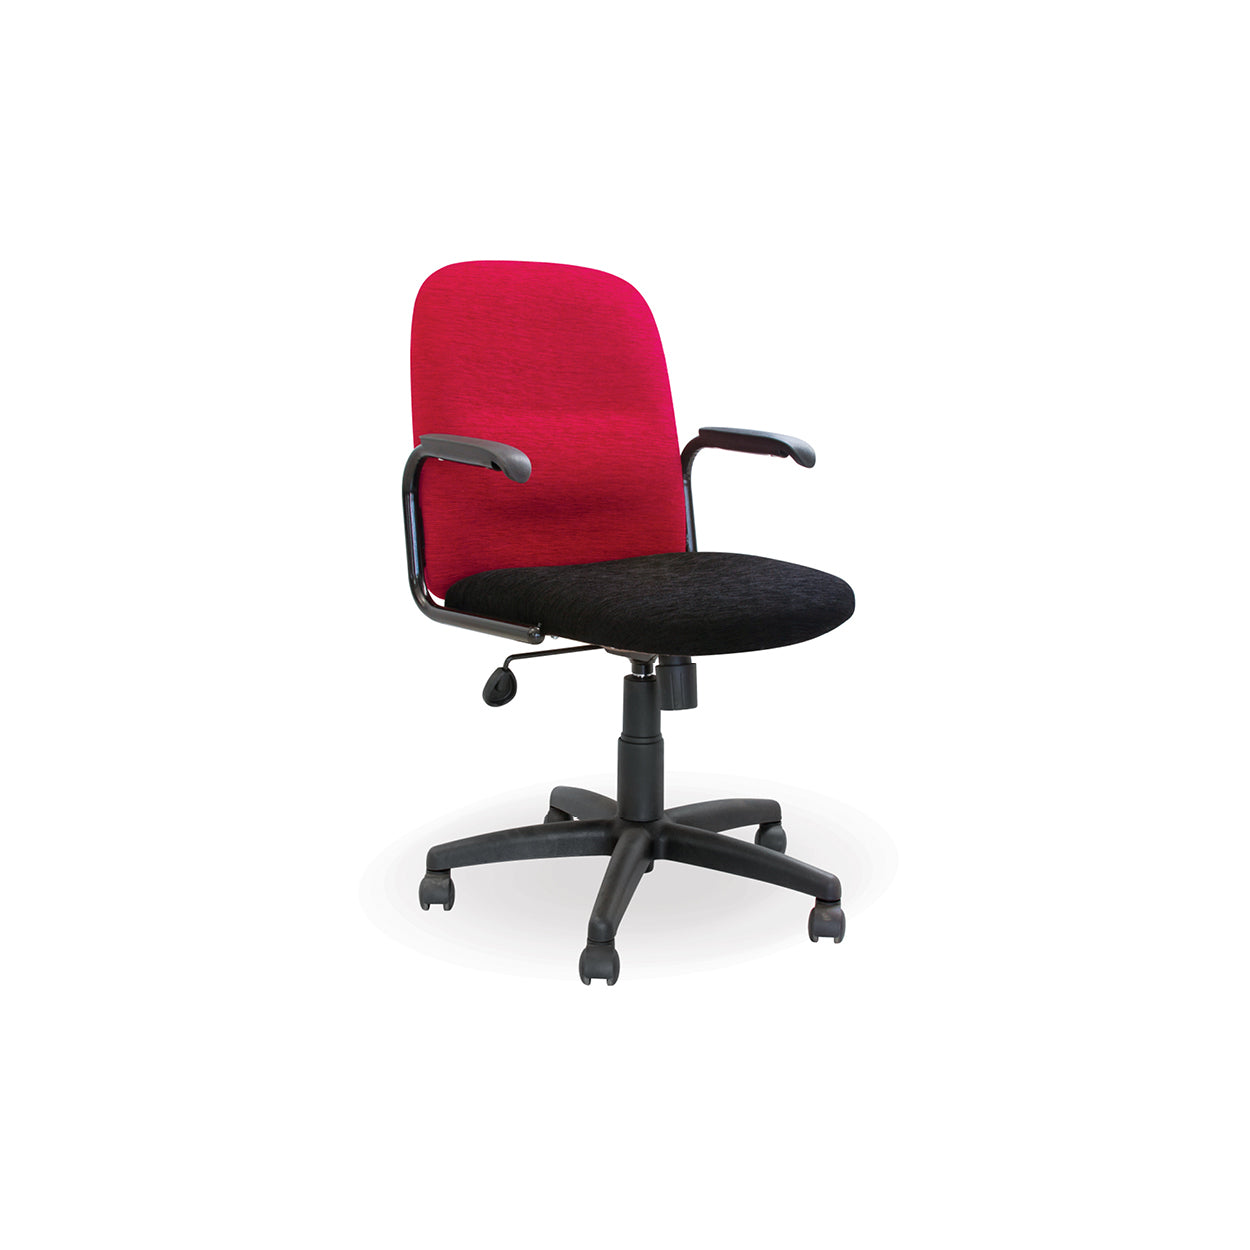 Hedcor mid back chair